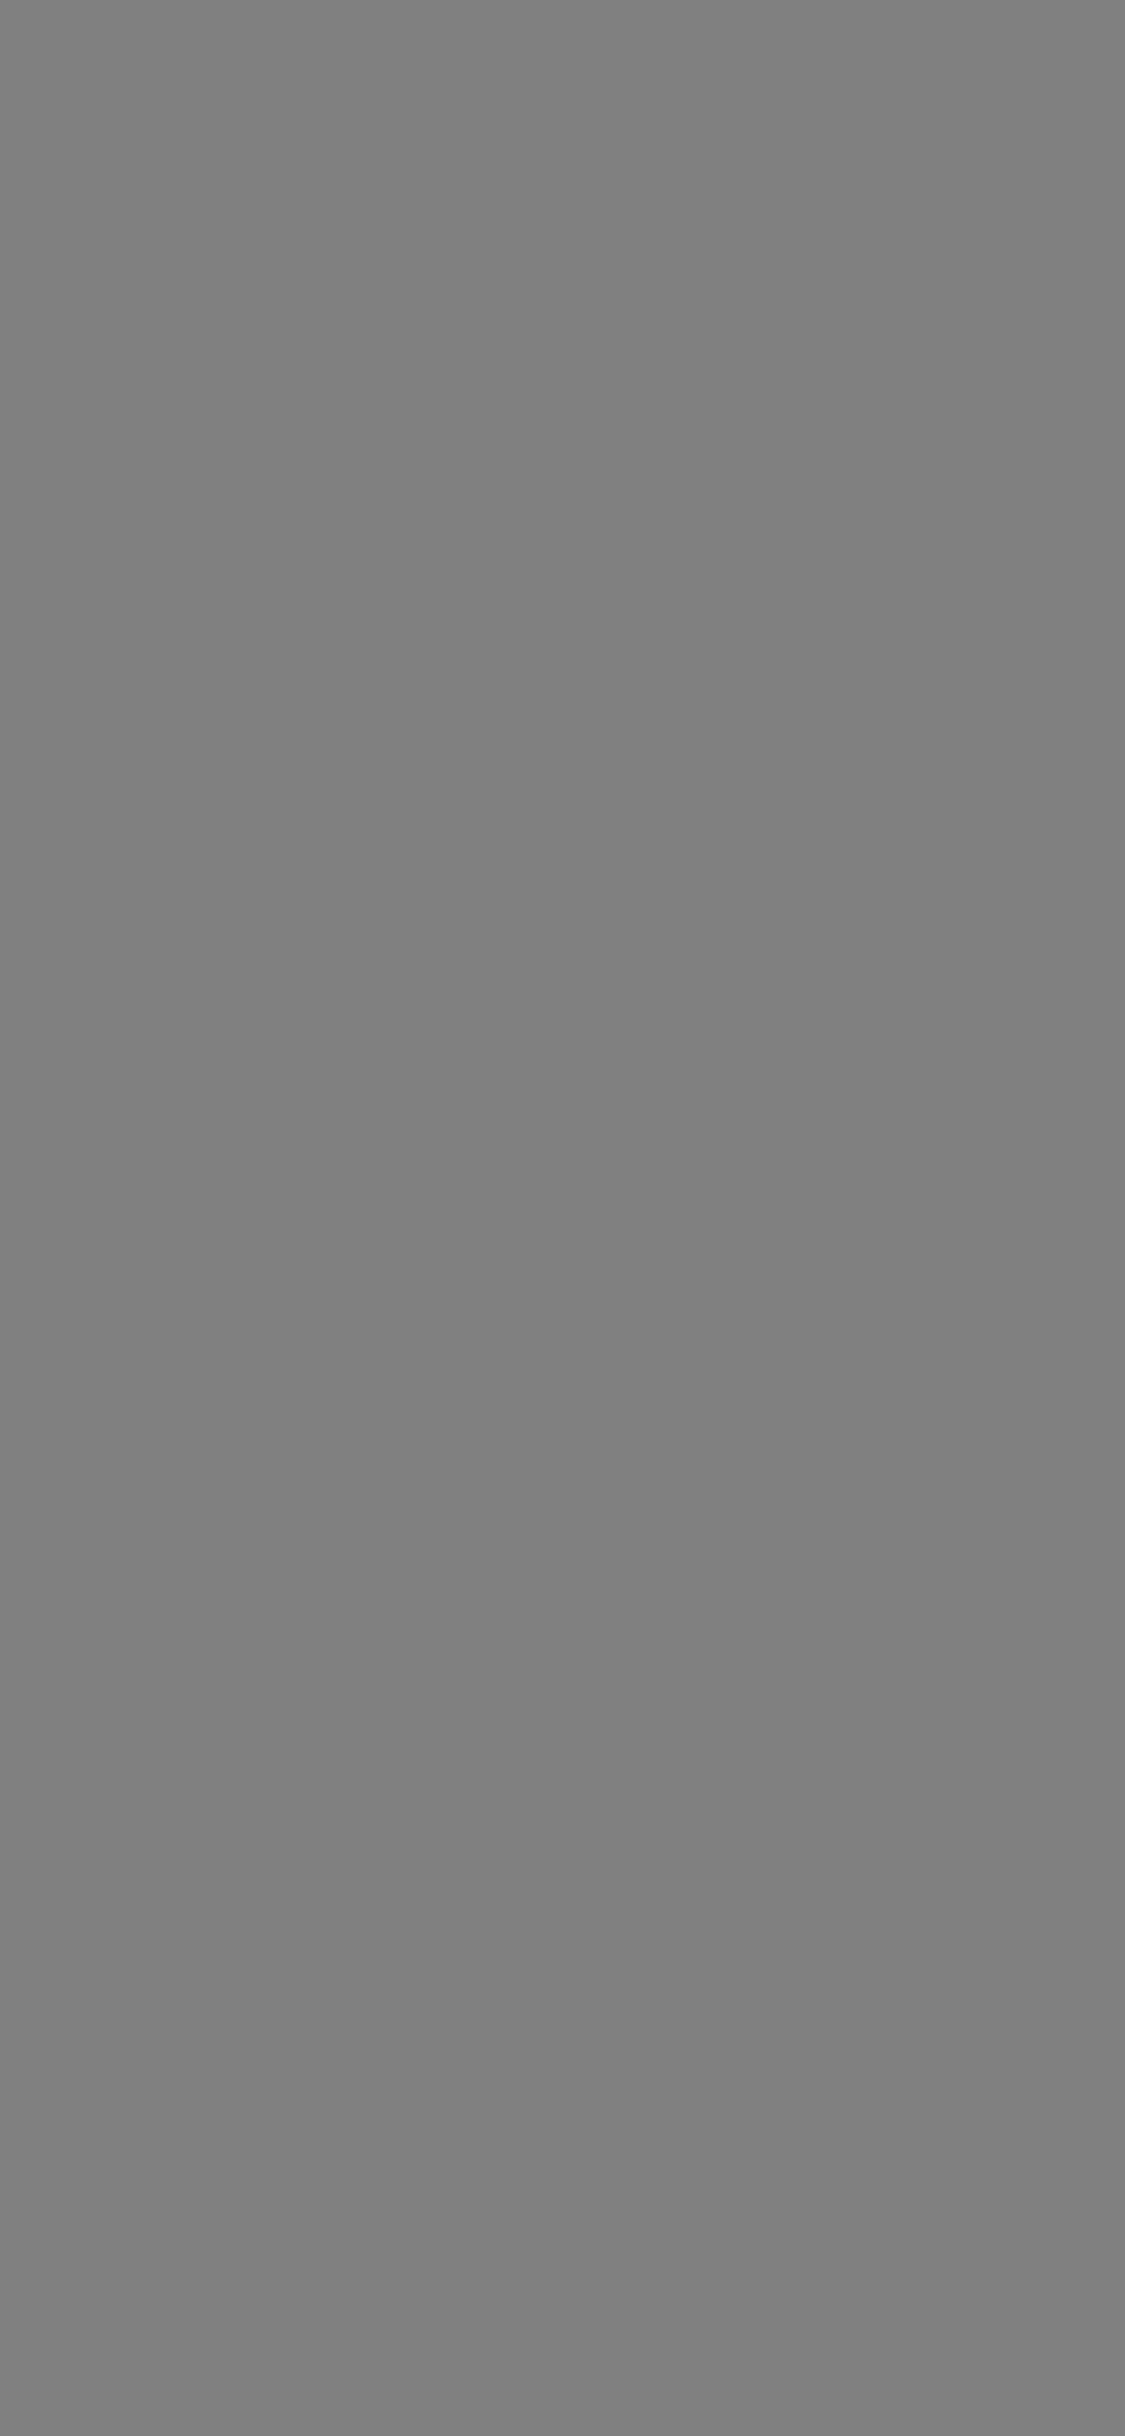 1125x2436 Gray Solid Color Background